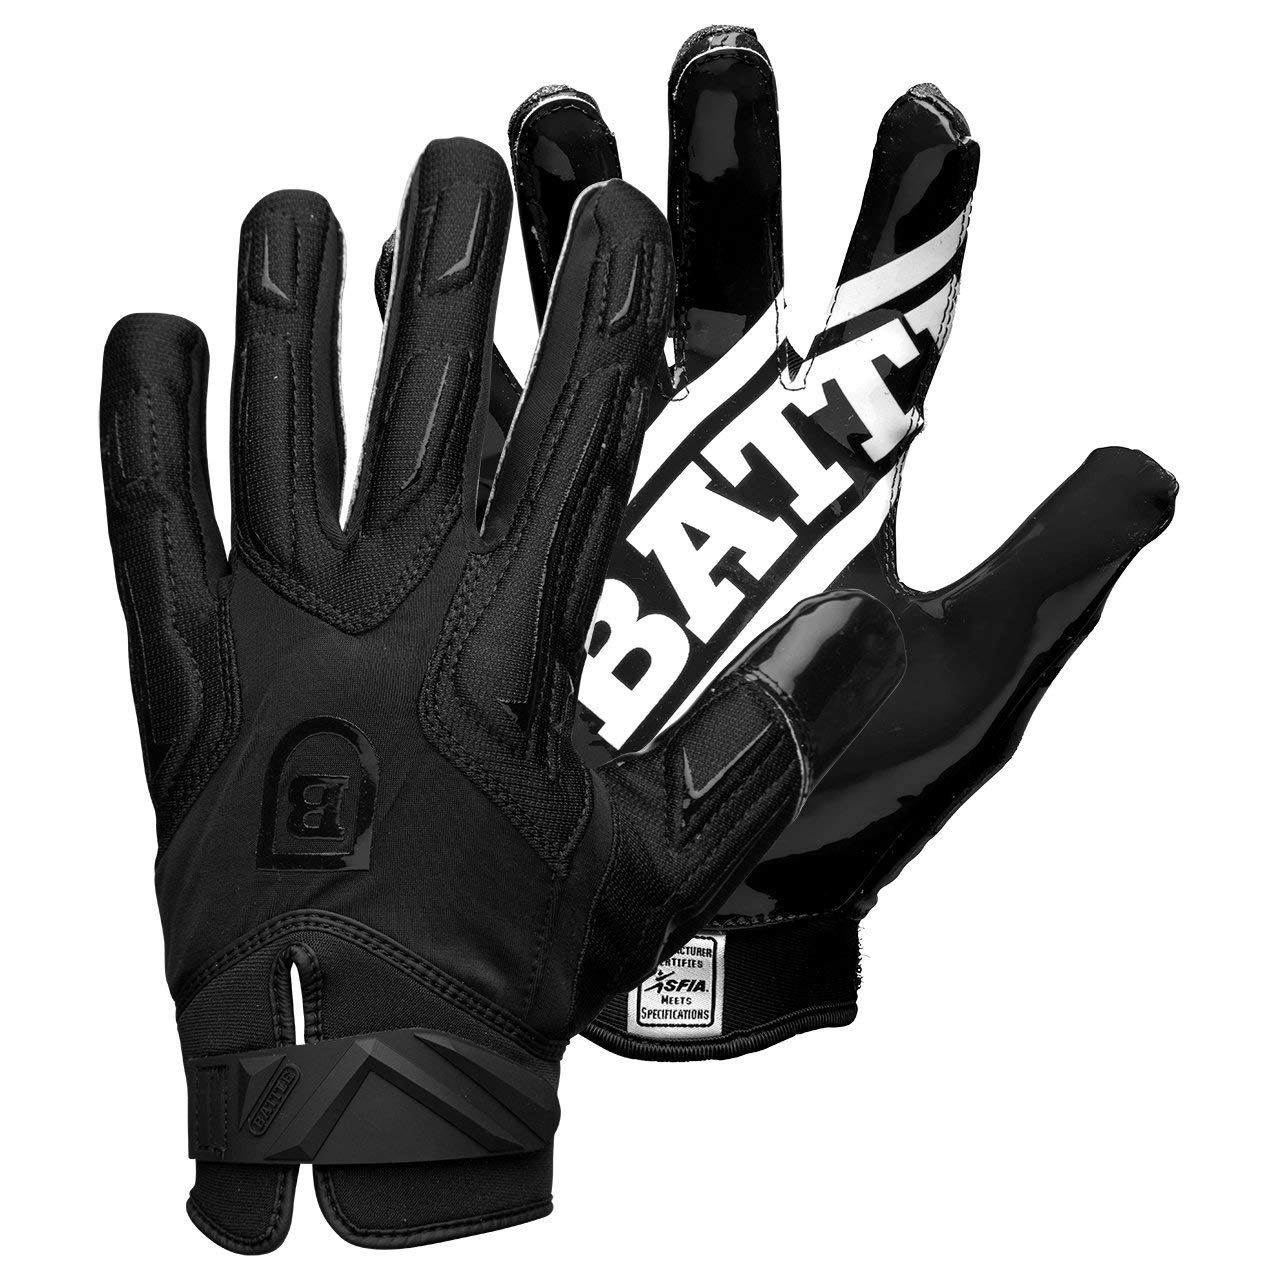 Battle Sports Science Warm Polar Fleece Ultra-Stick Football Gloves -Black/Black